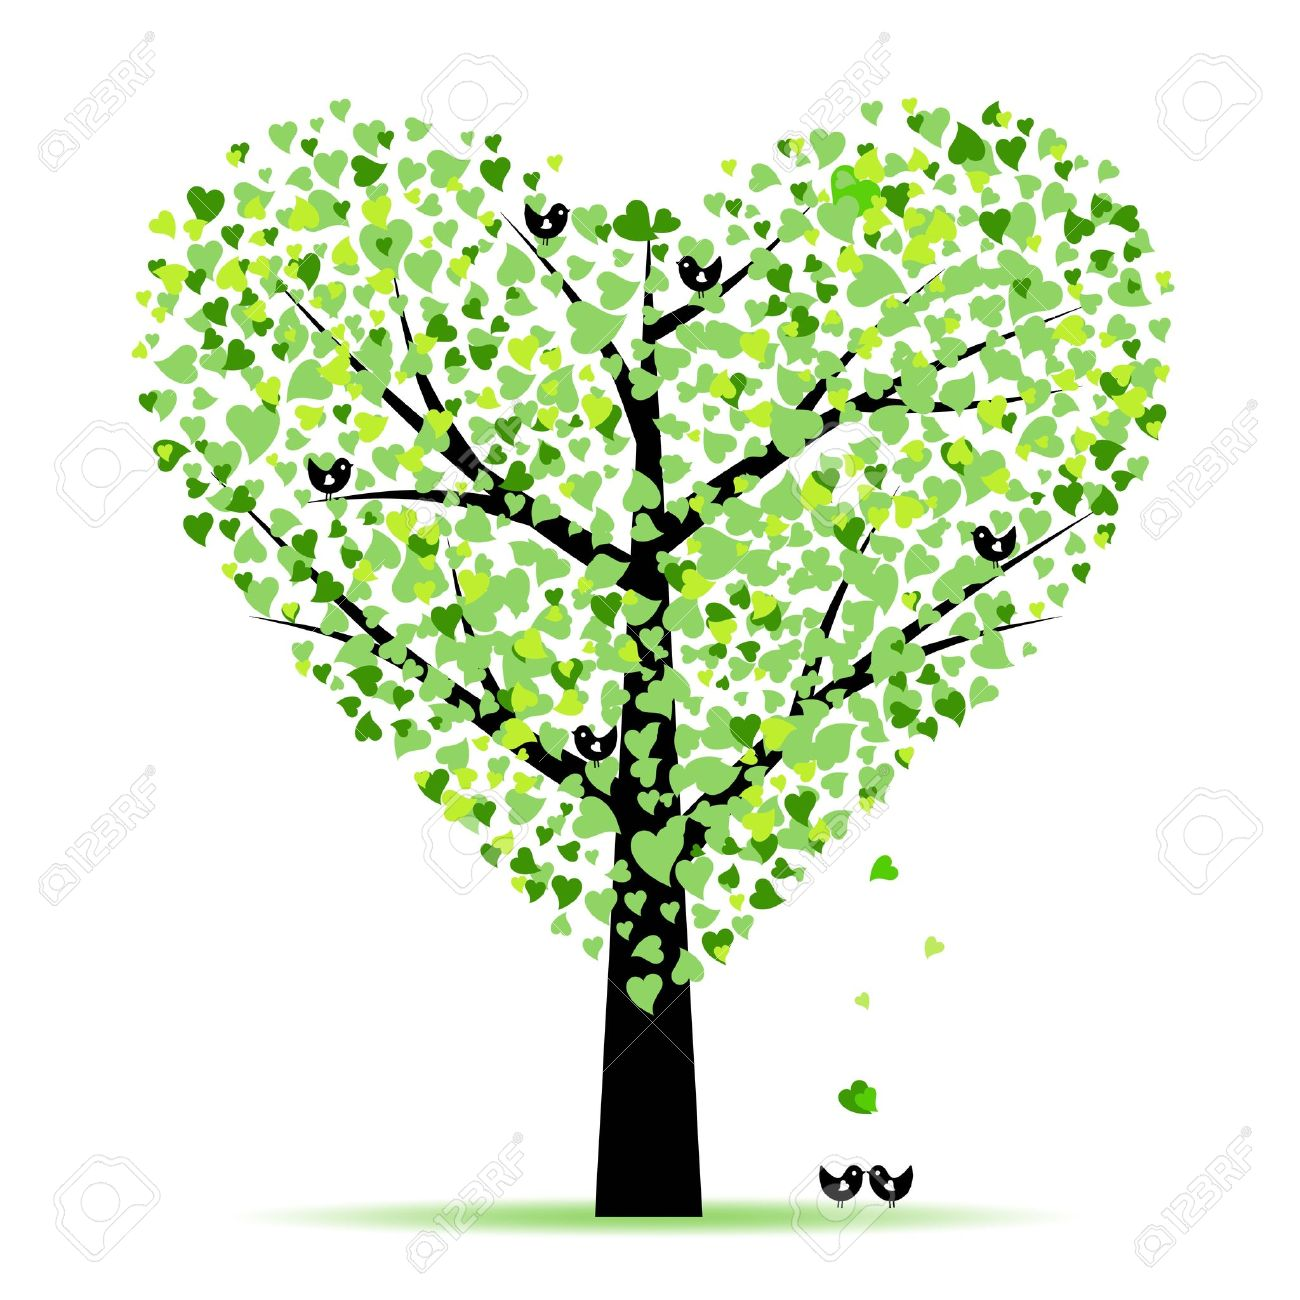 Tree With Hearts Clipart.